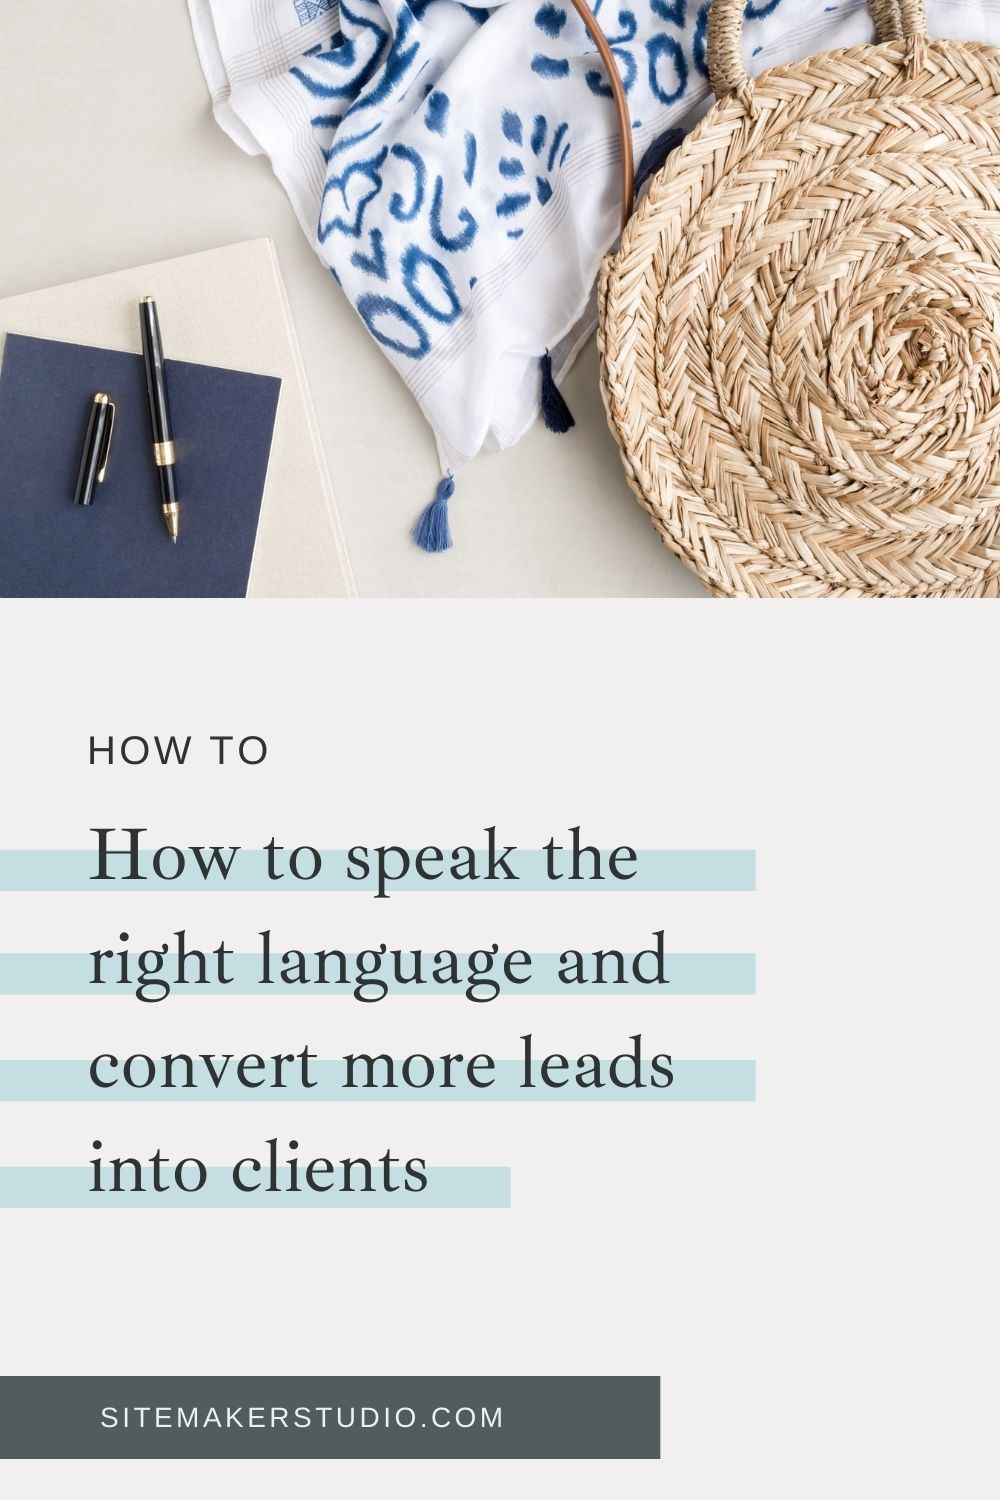 converting interior design home industry leads into clients with a custom website design|converting interior design home industry leads into clients with a custom website design|converting interior design home industry leads into clients with a custom website design